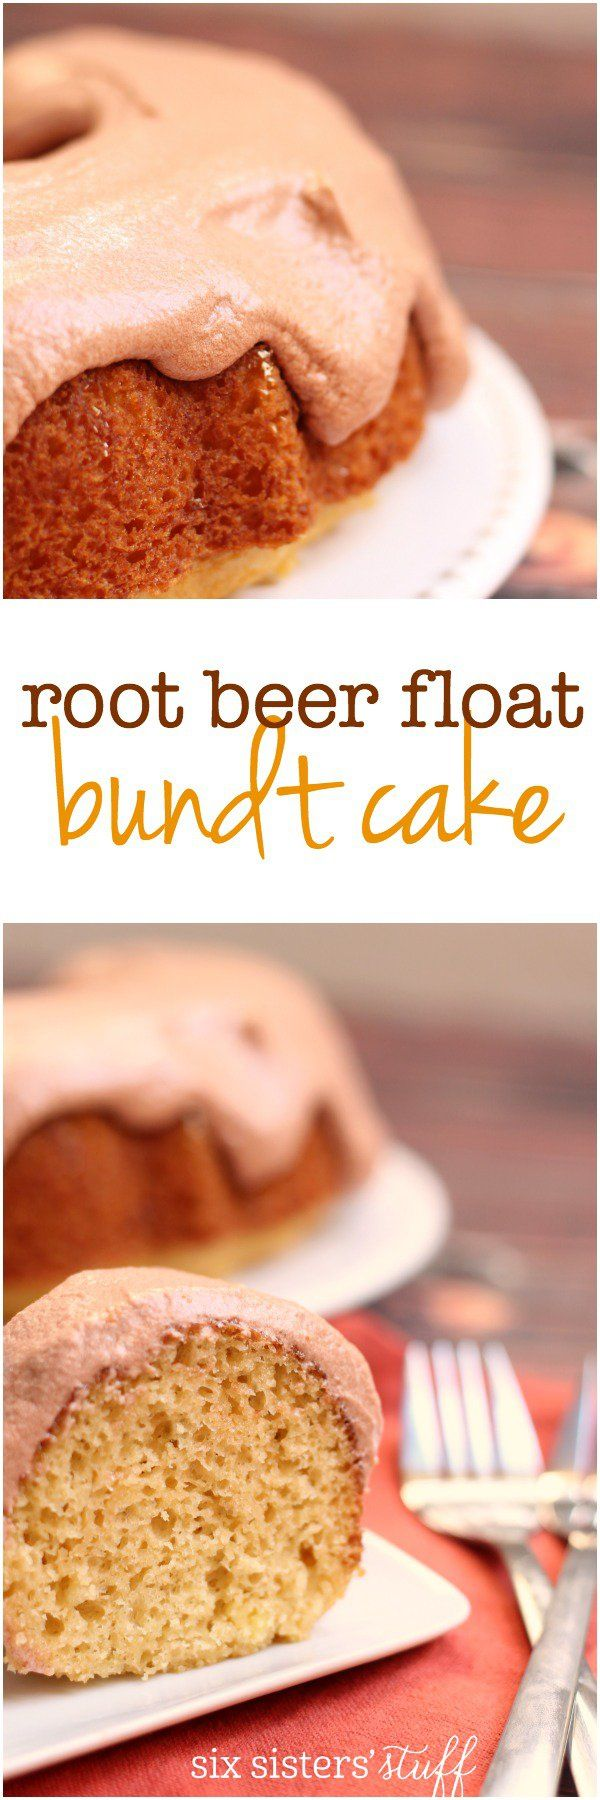 Root Beer Float Bundt Cake Recipe (cake mix recipe)